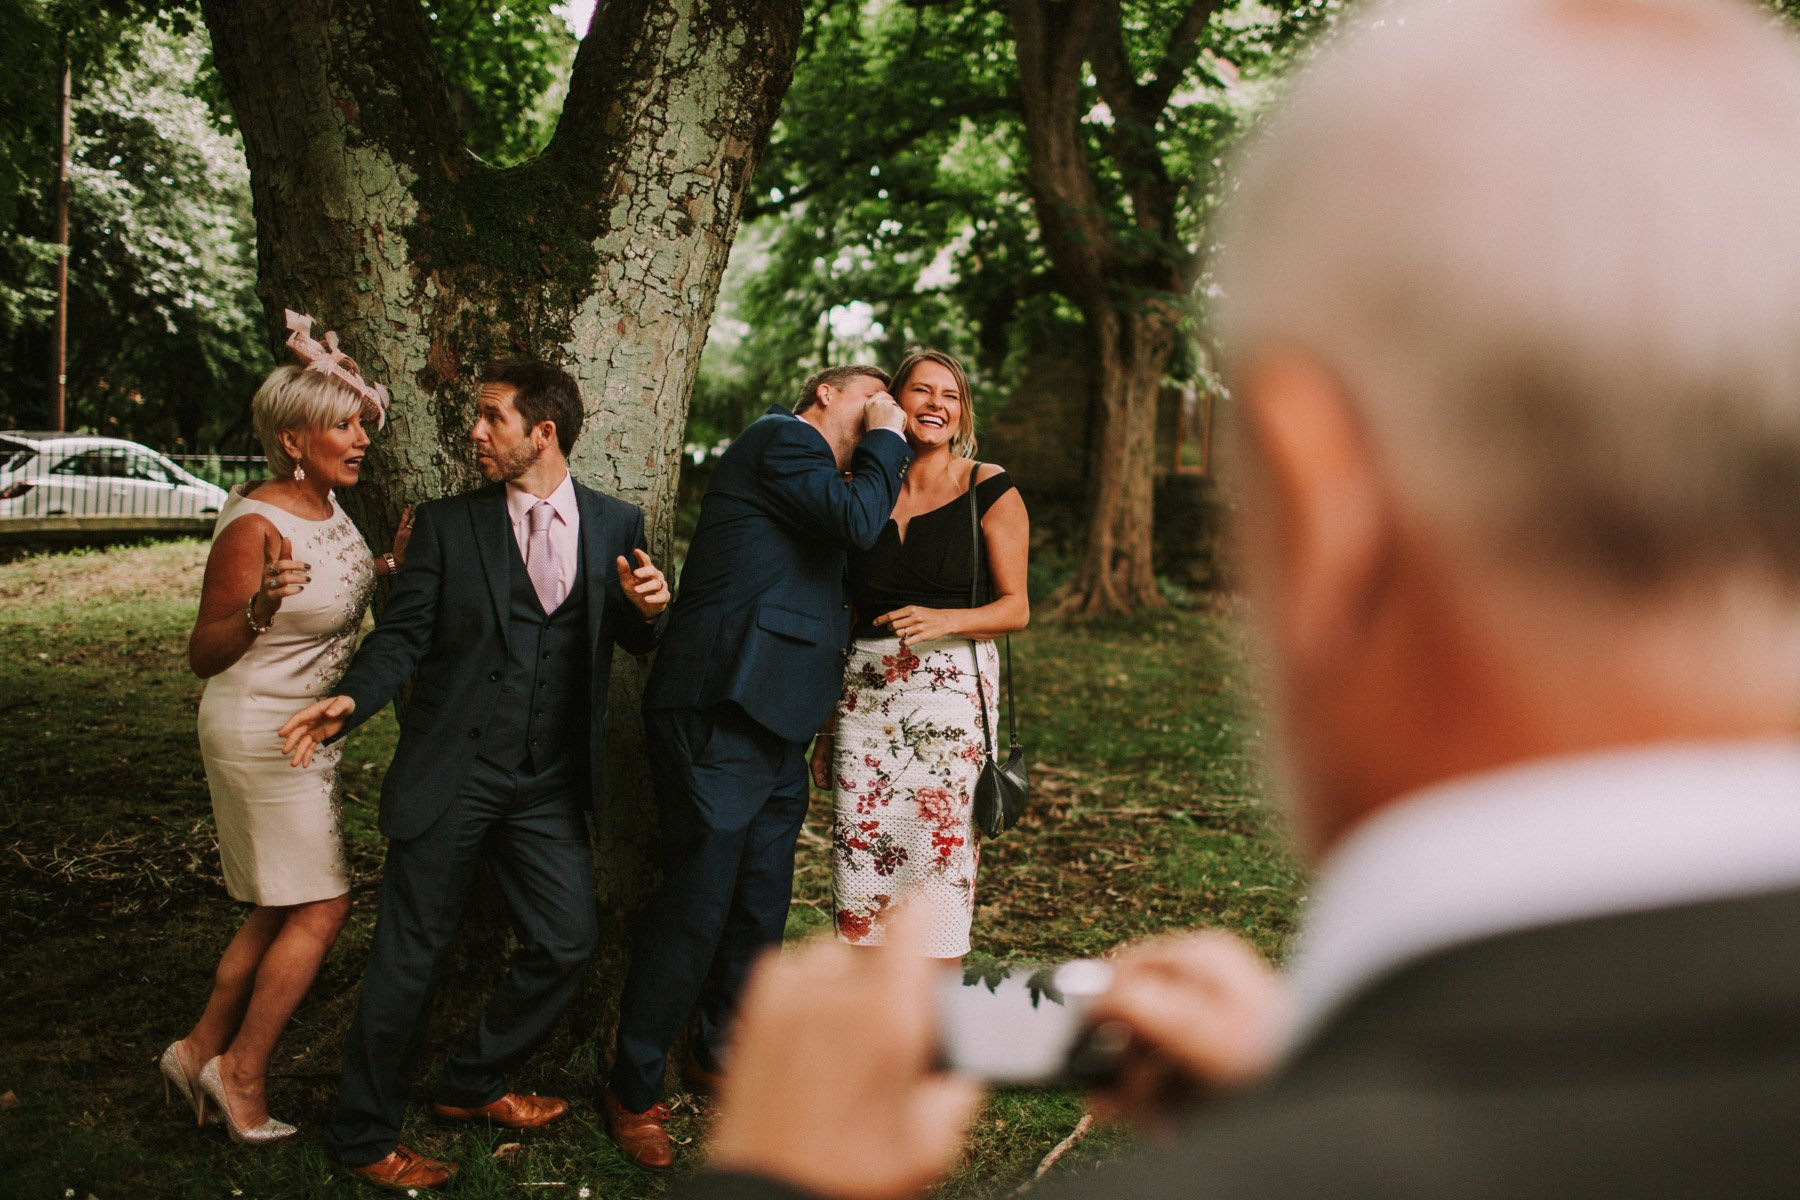 summerhill bowling club wedding - funny formal photograph